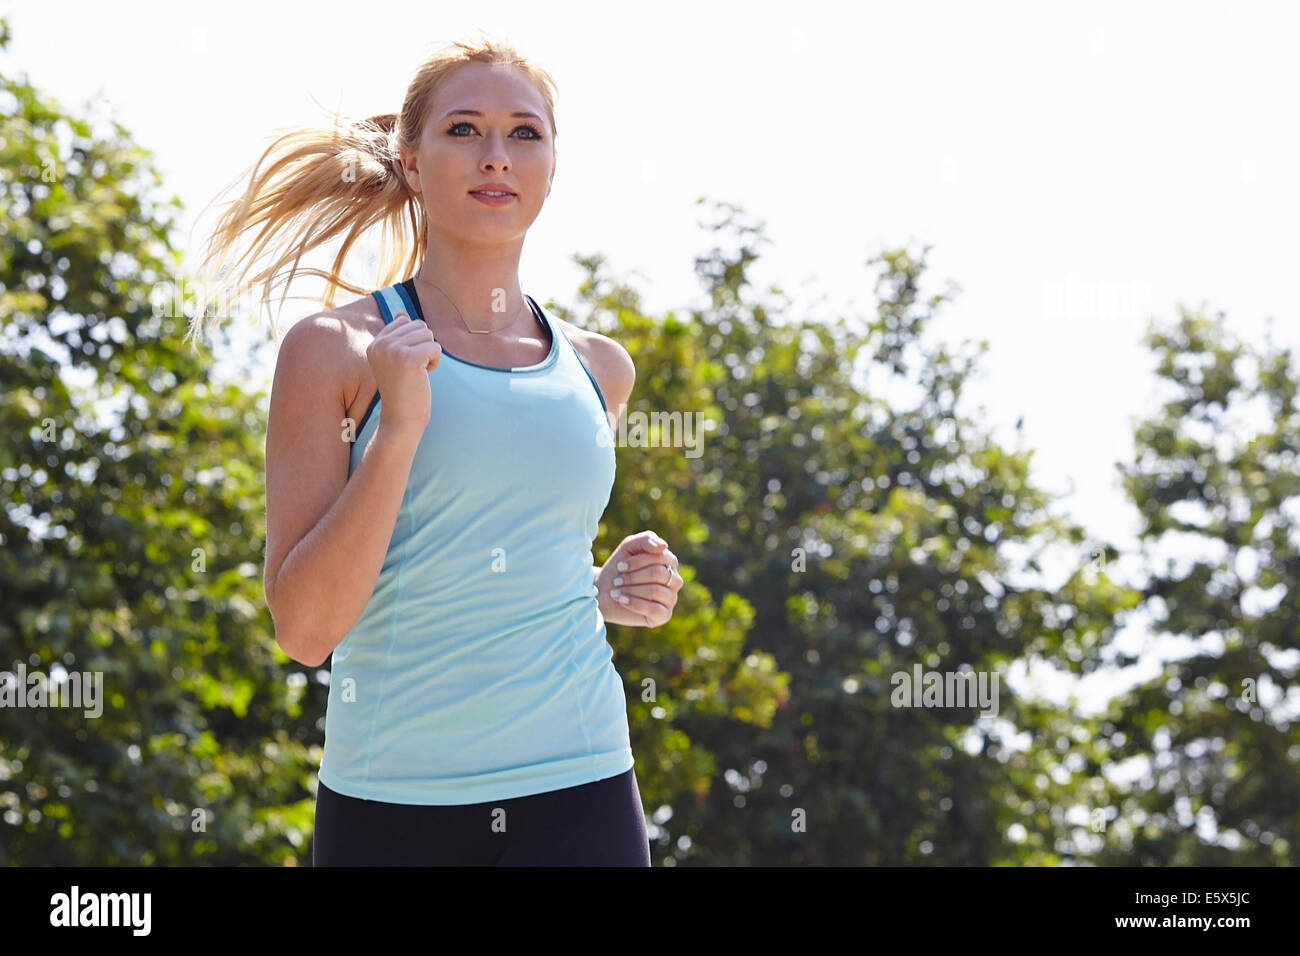 Woman running in park Photo Stock